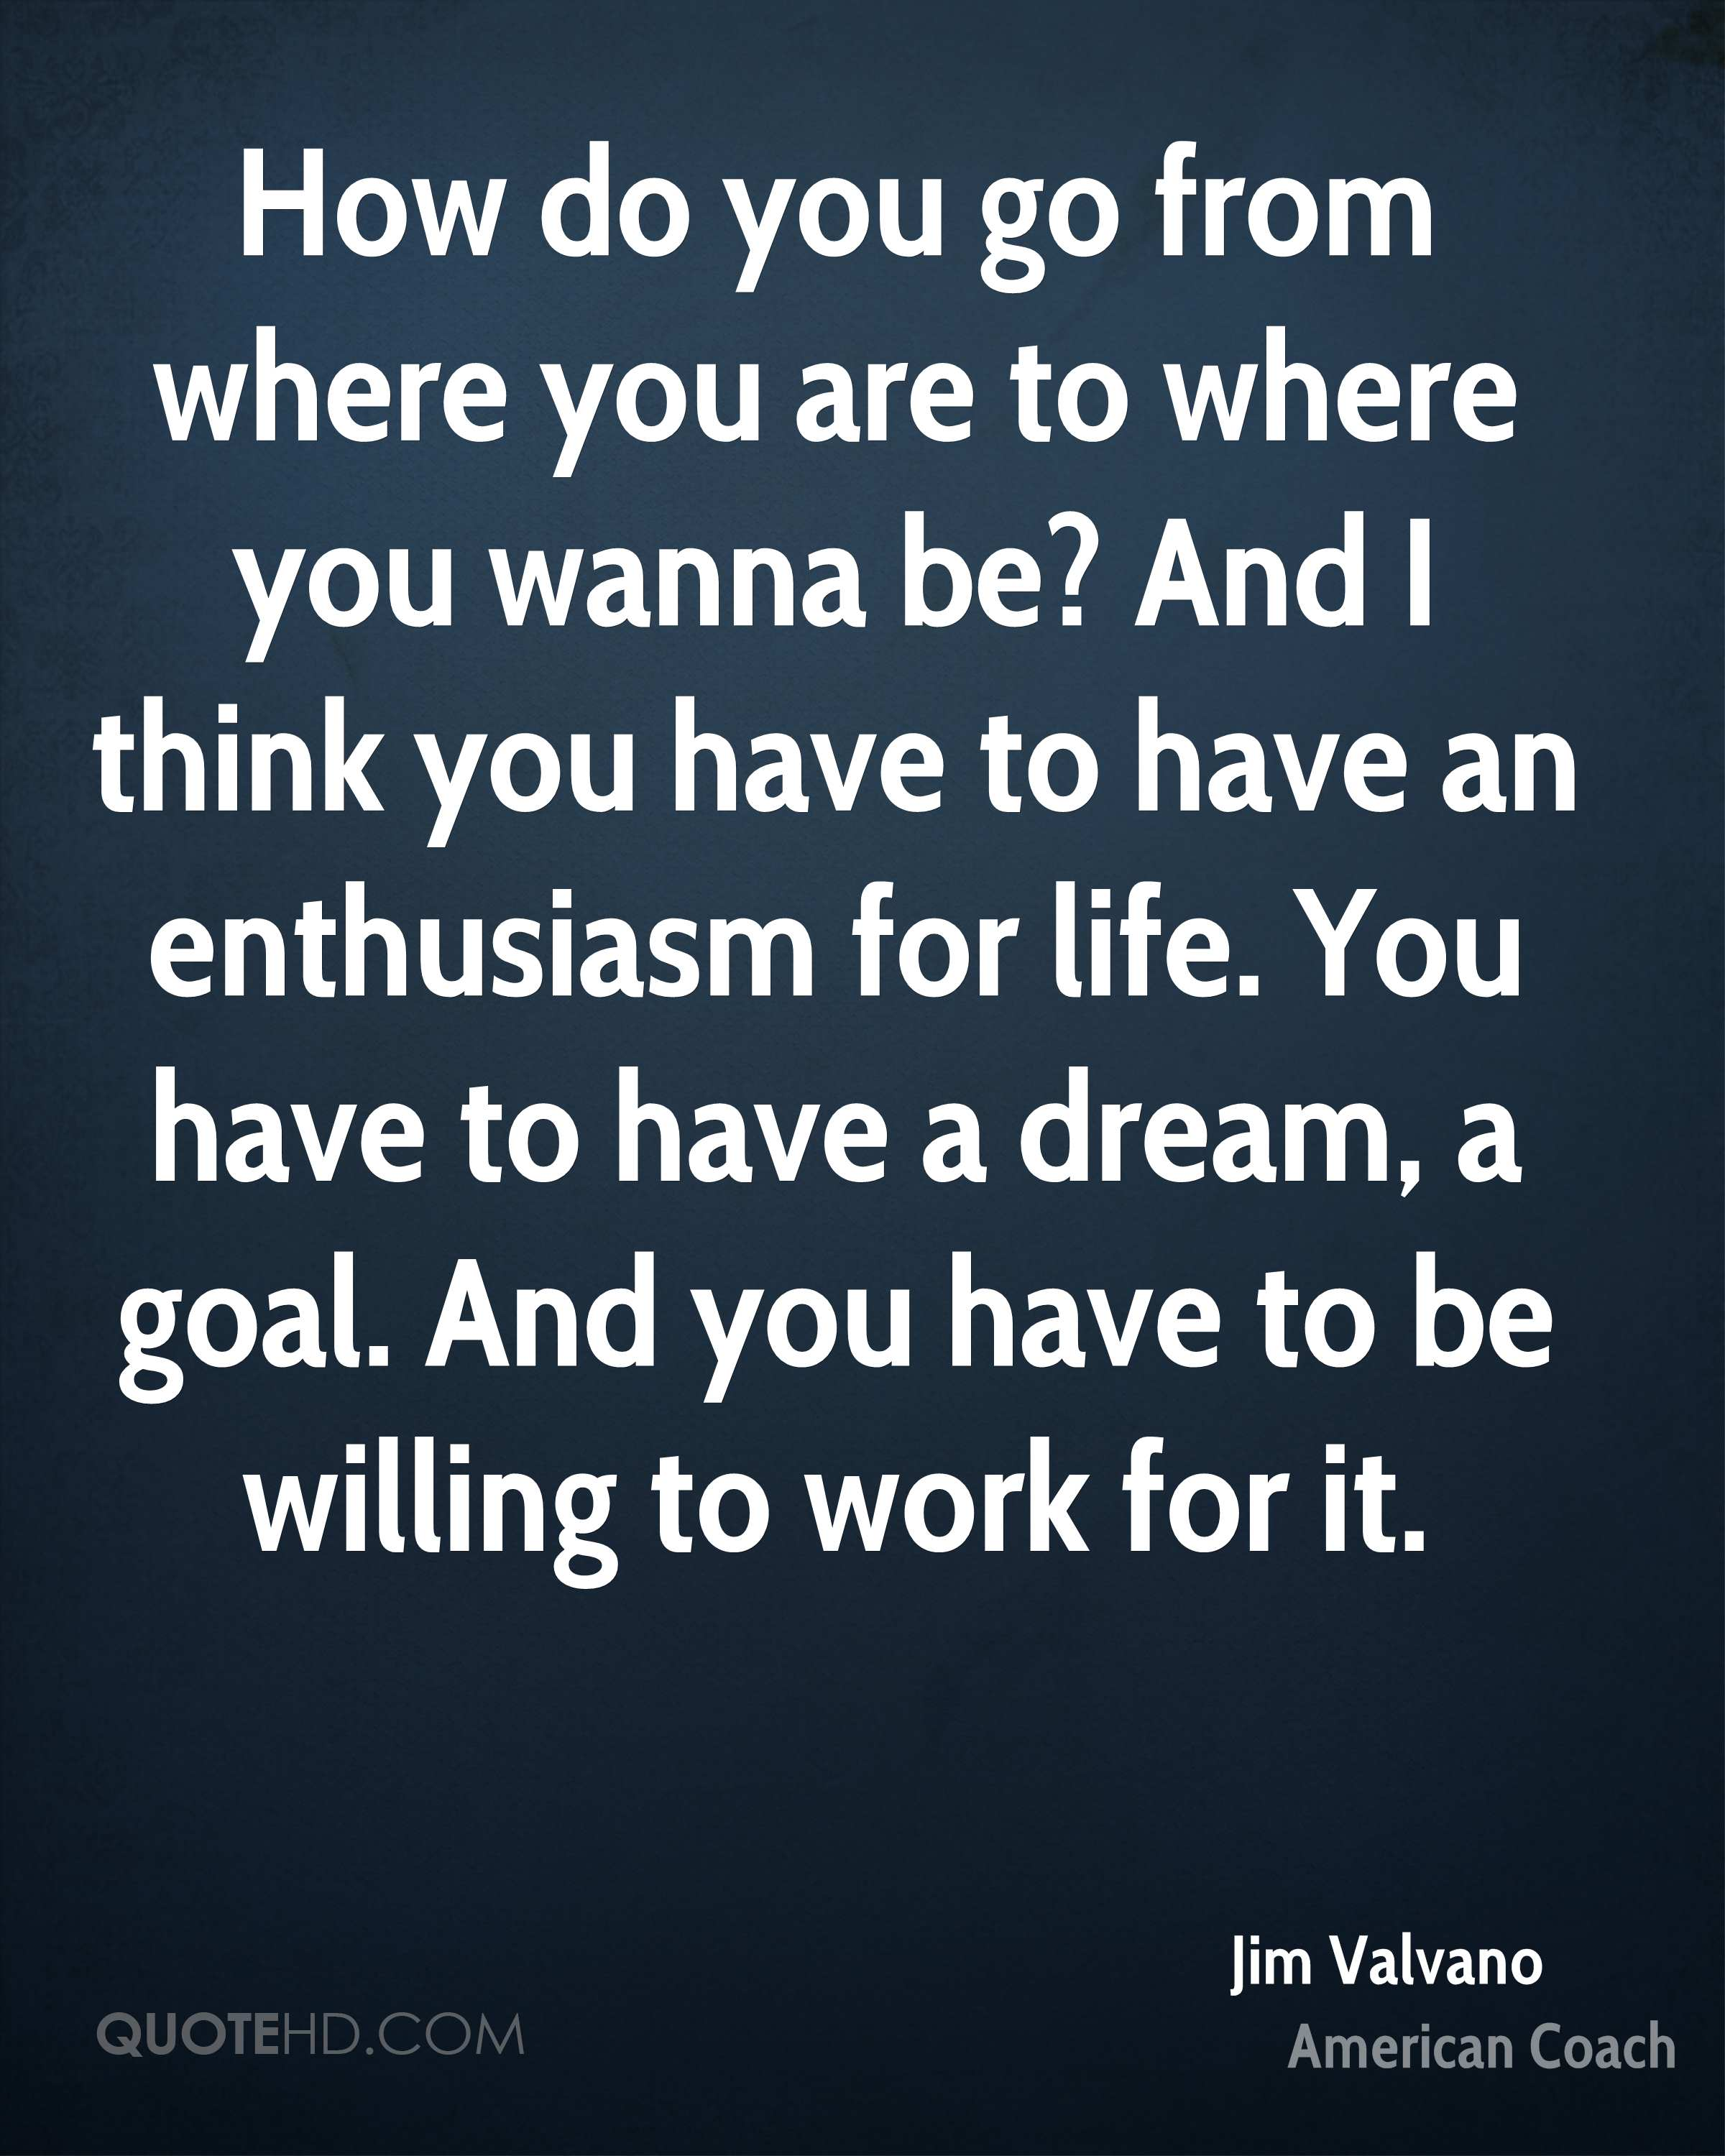 How do you go from where you are to where you wanna be? And I think you have to have an enthusiasm for life. You have to have a dream, a goal. And you have to be willing to work for it.